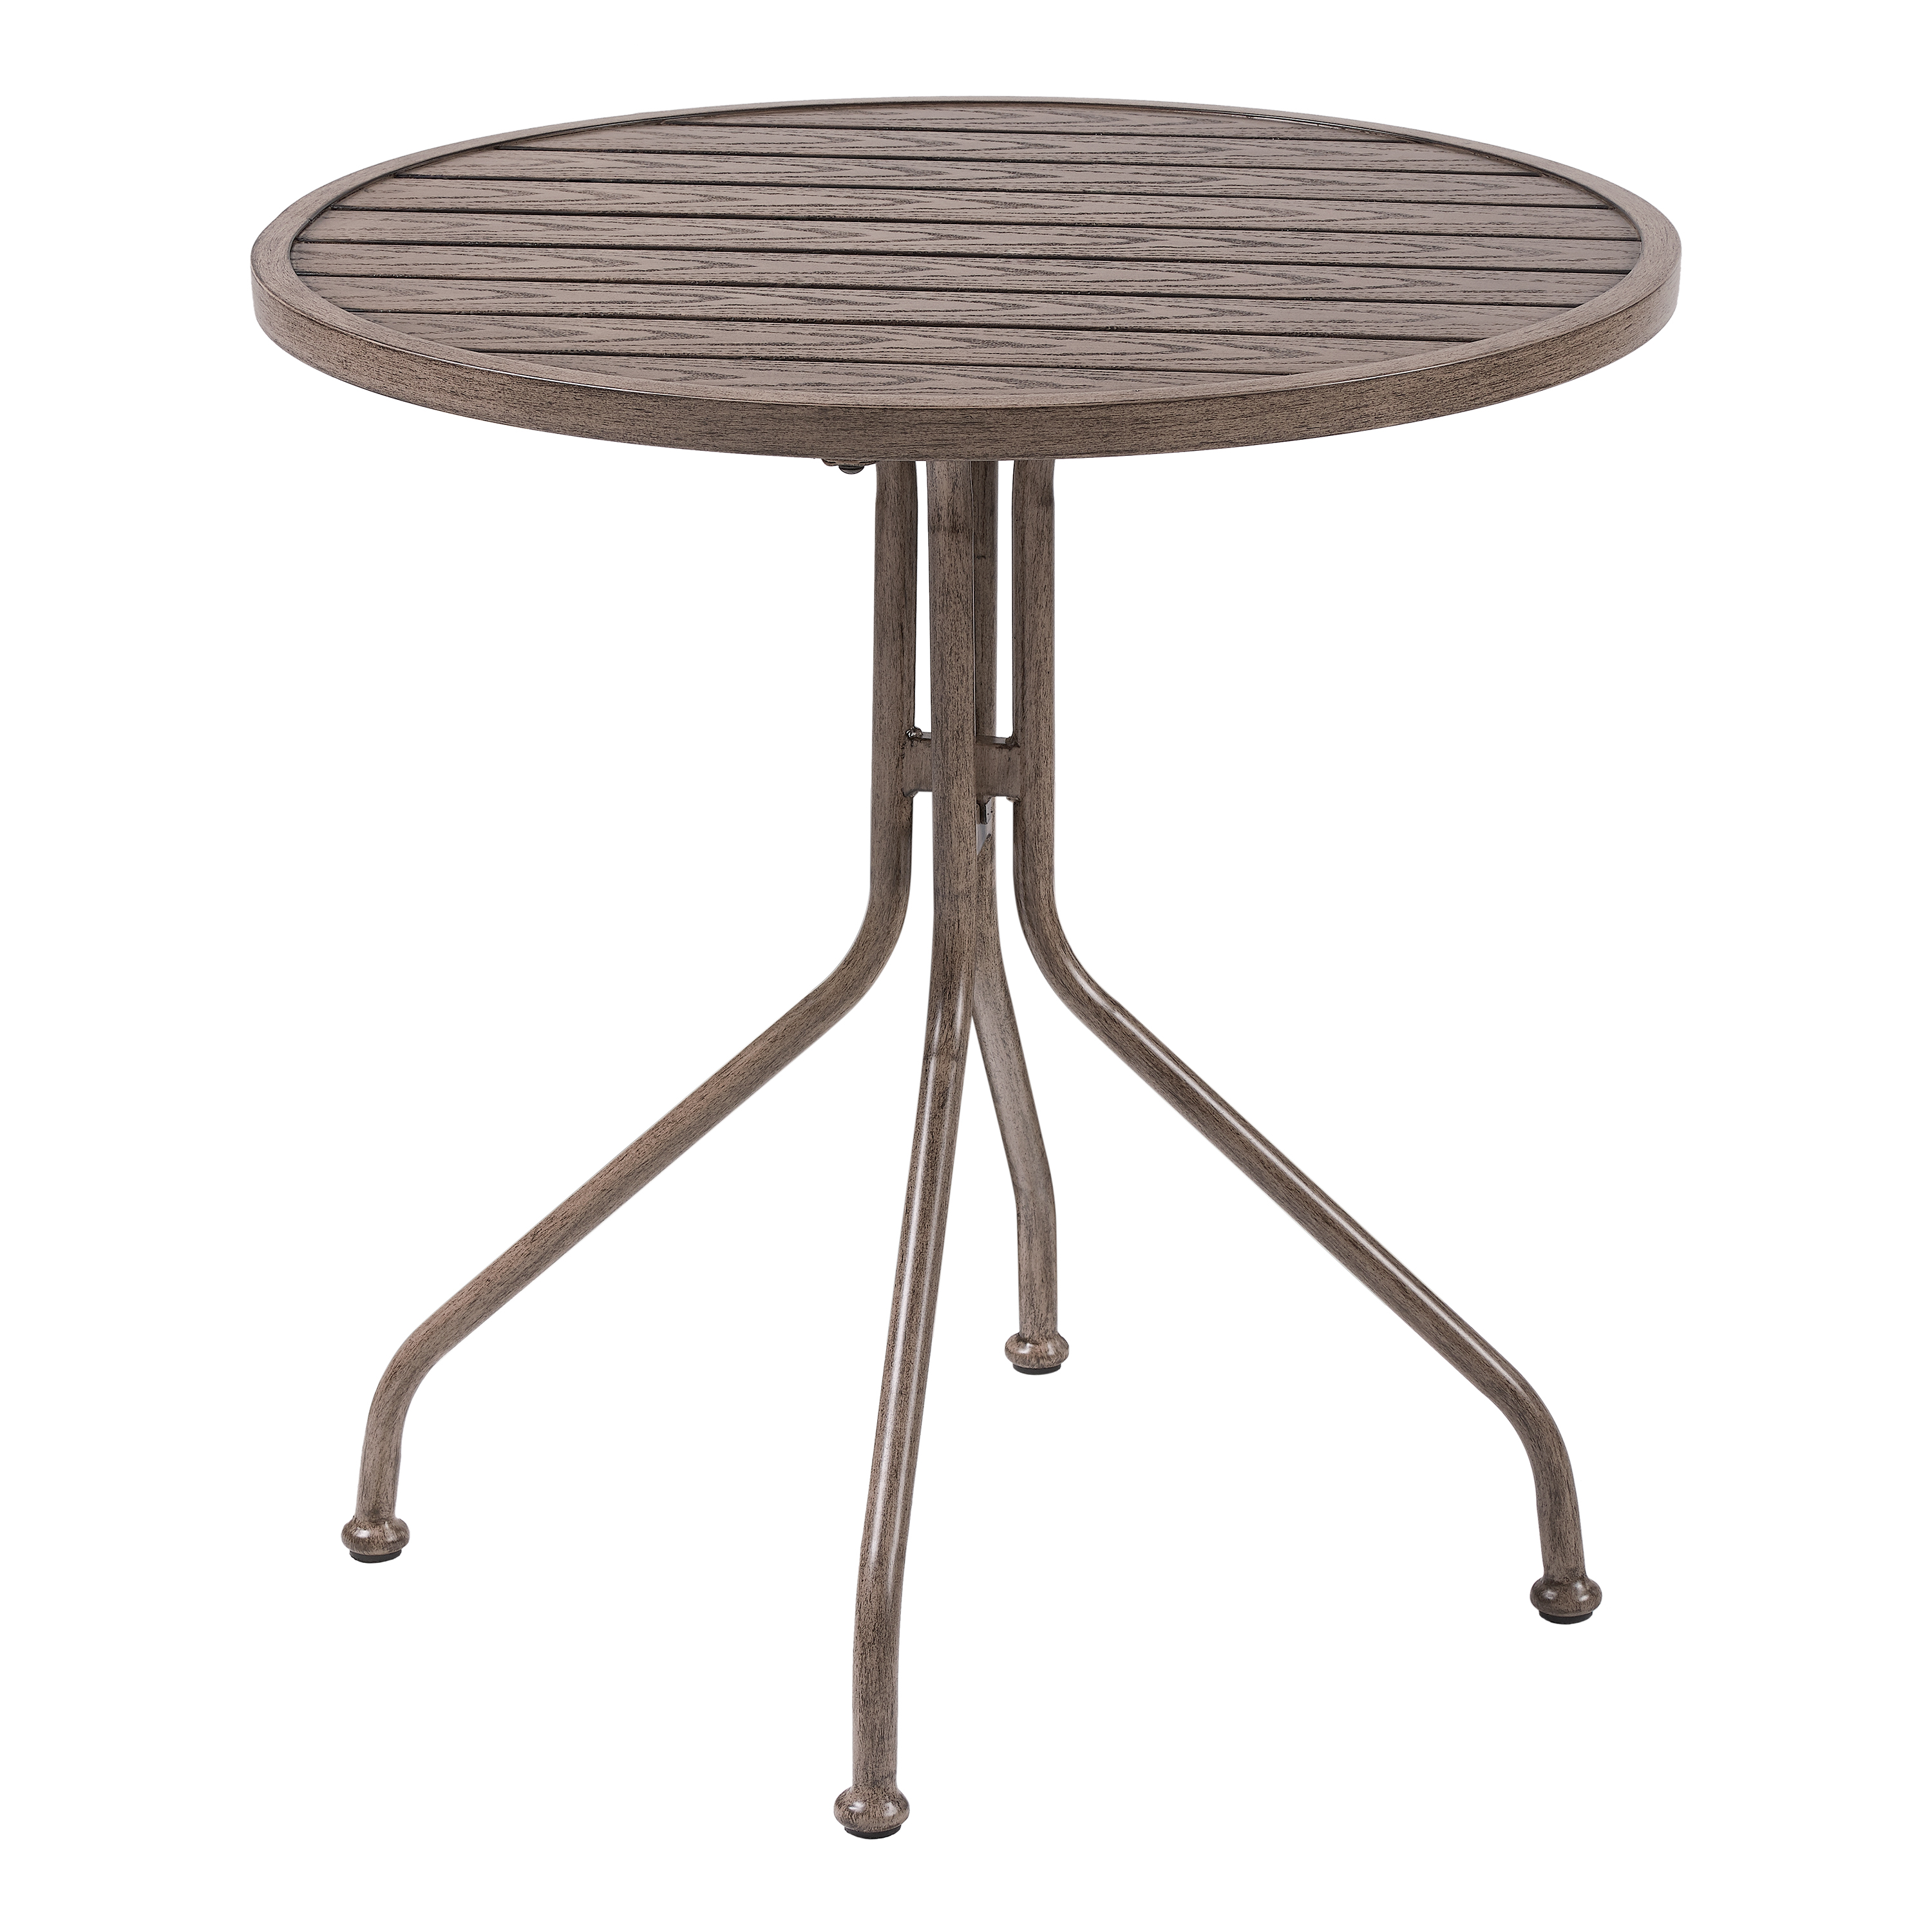 Better Homes & Gardens Camrose Farmhouse Round Slat-Top Table